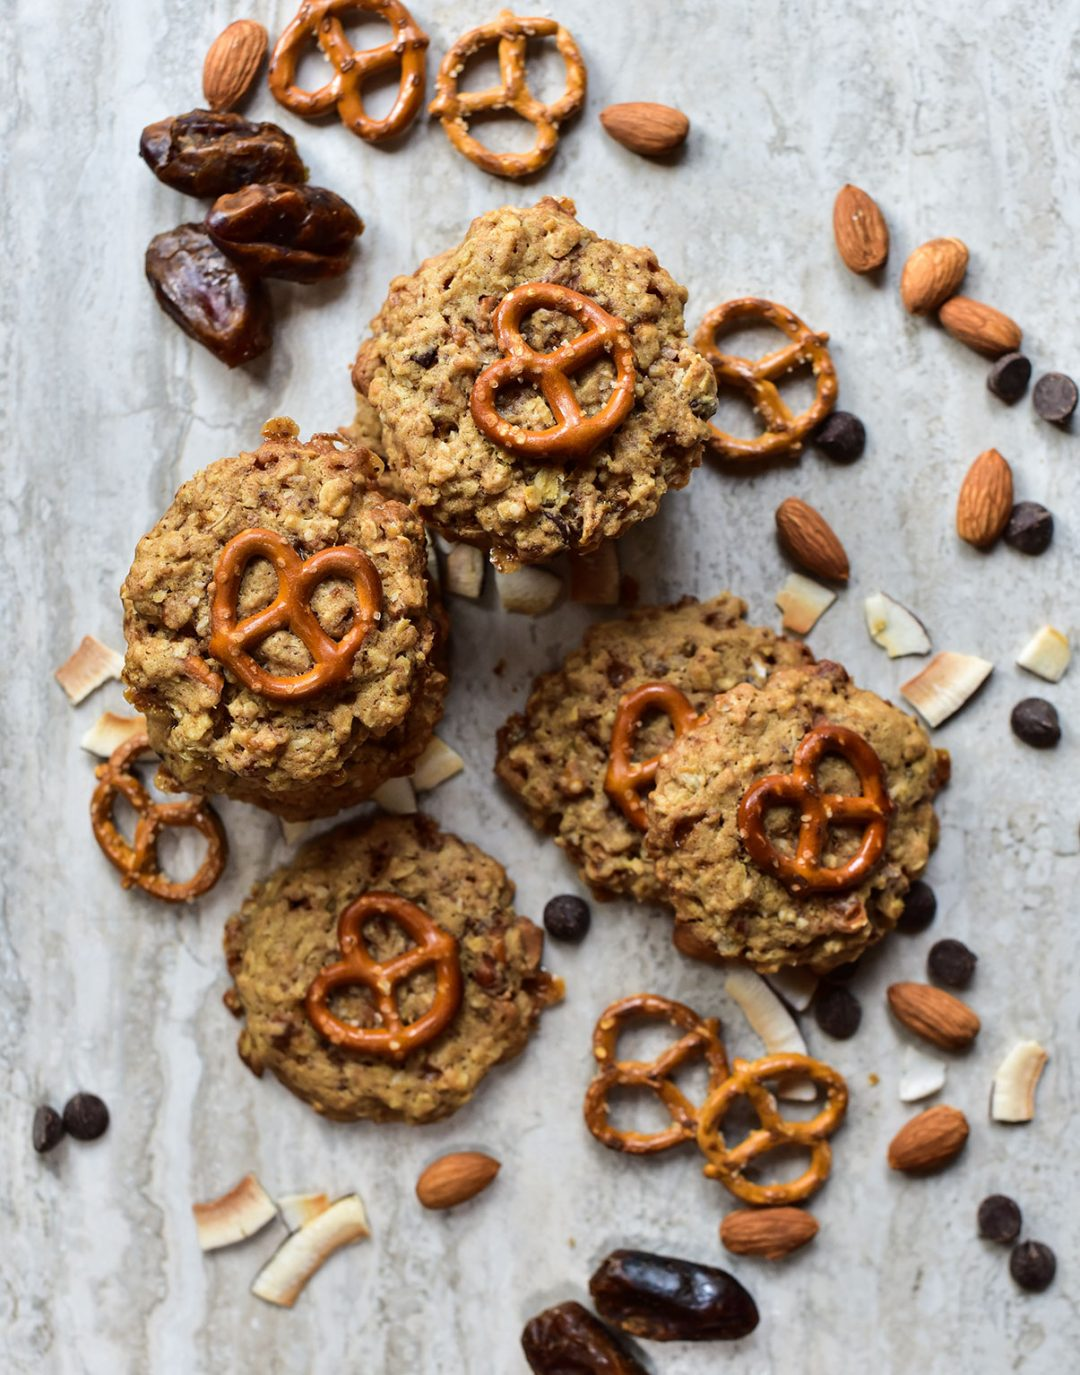 top view of pretzel oat cookies with chocolate chips, almonds and dates